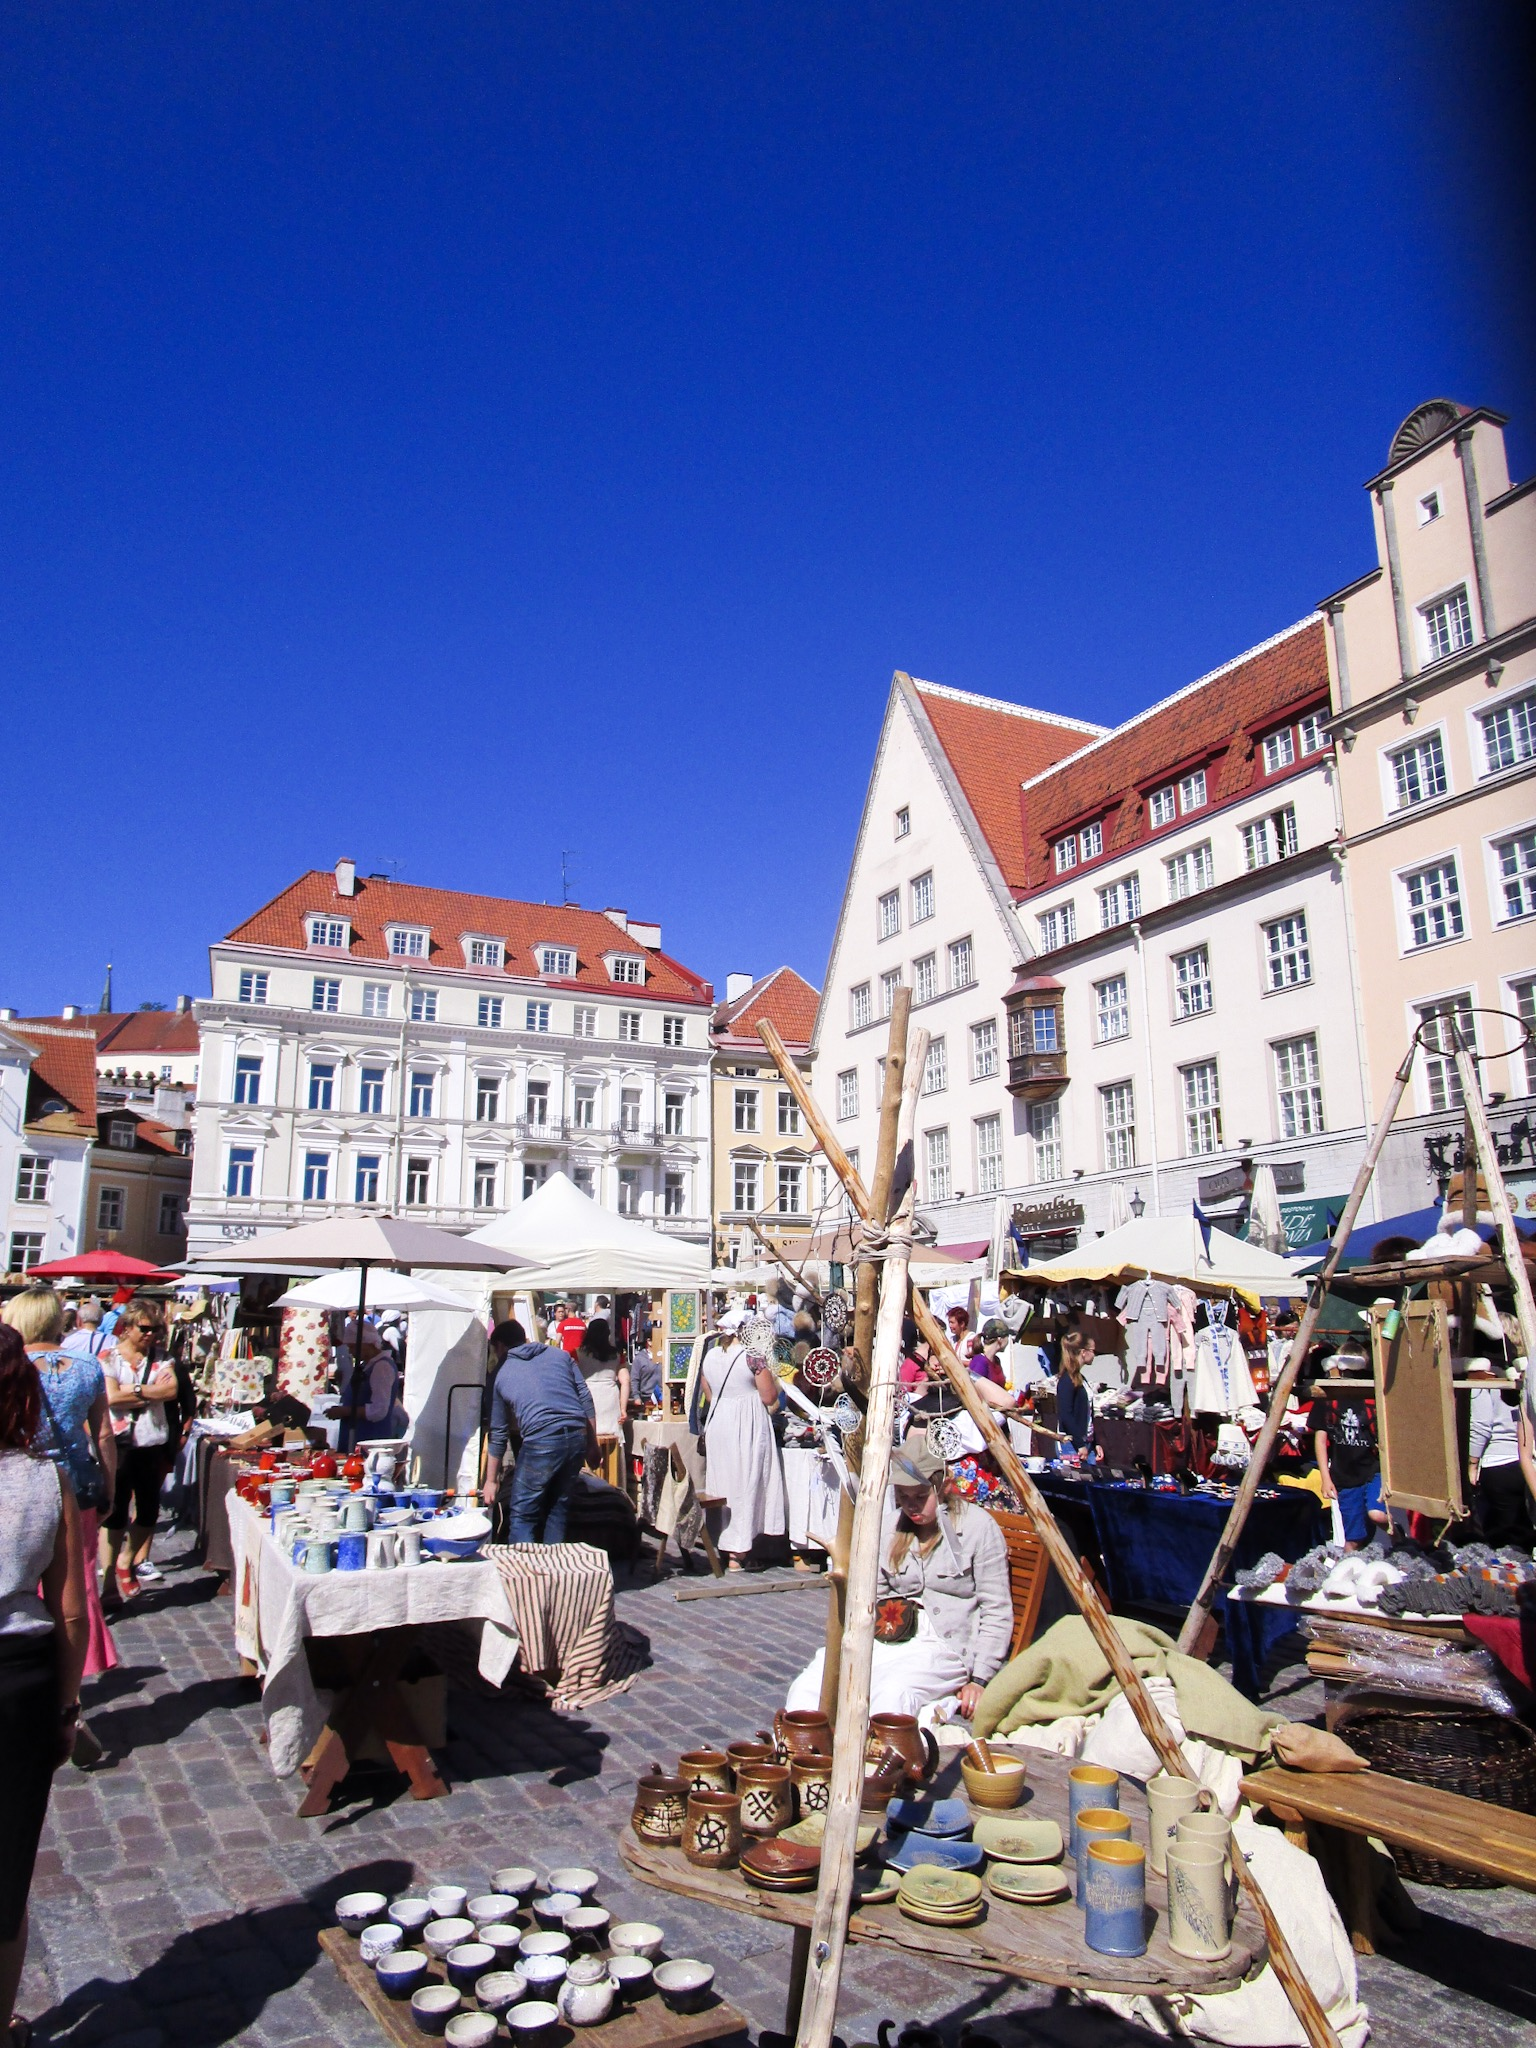 Marketplace in Tallinn, Estonia